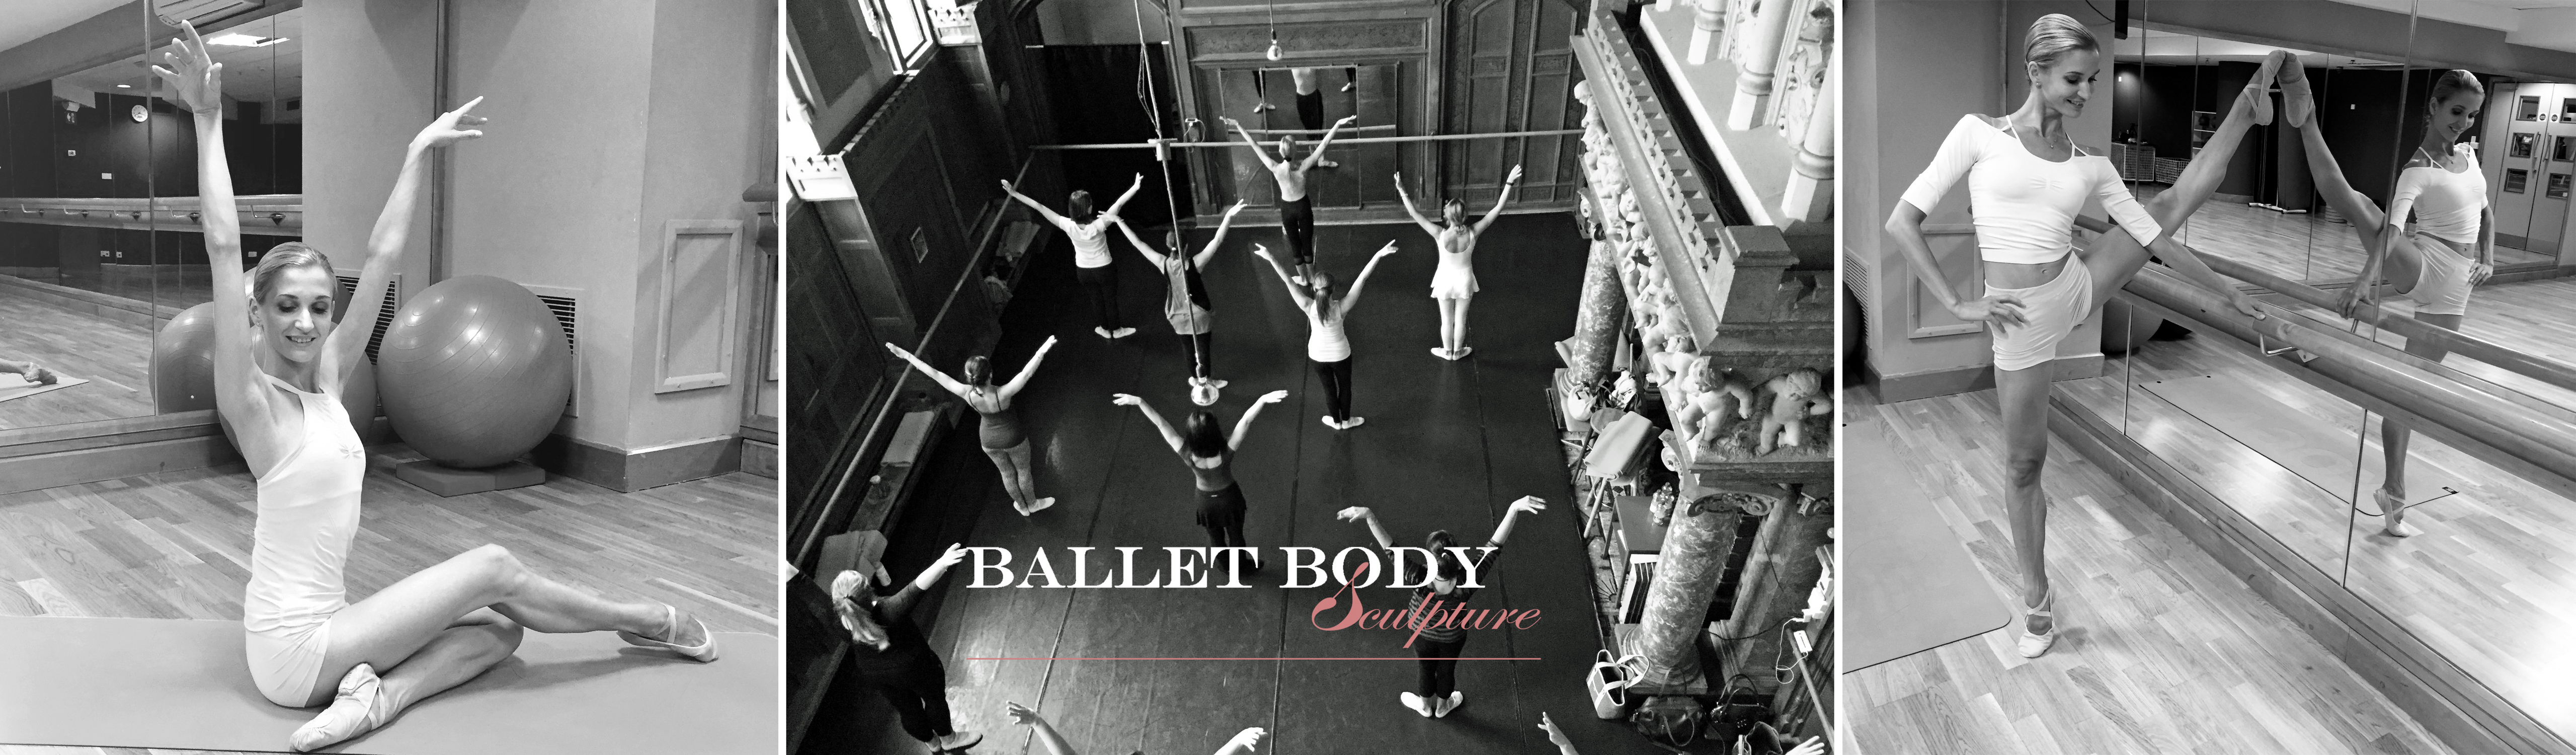 Ballet Body Sculpture undefined classes in London